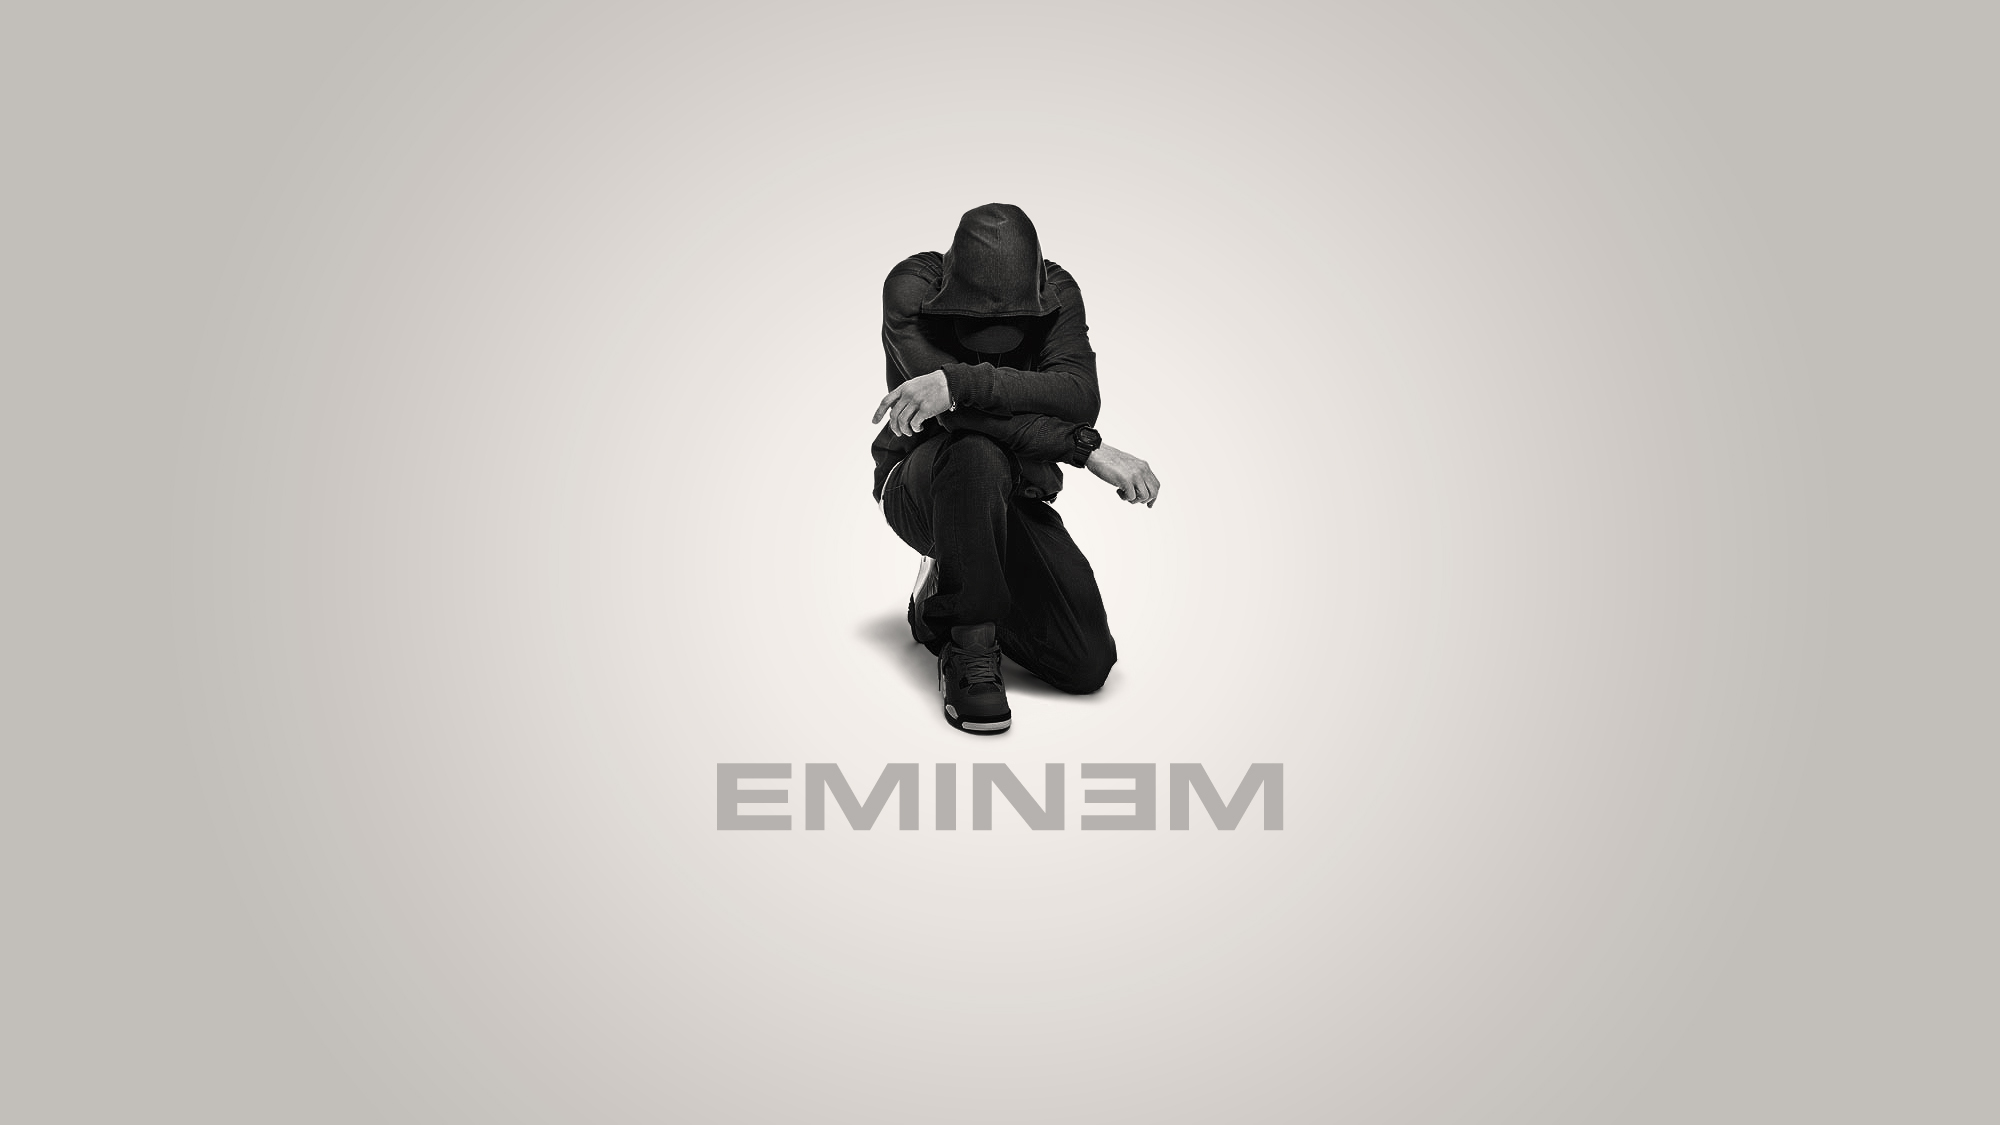 Eminem Wallpapers HD slogan